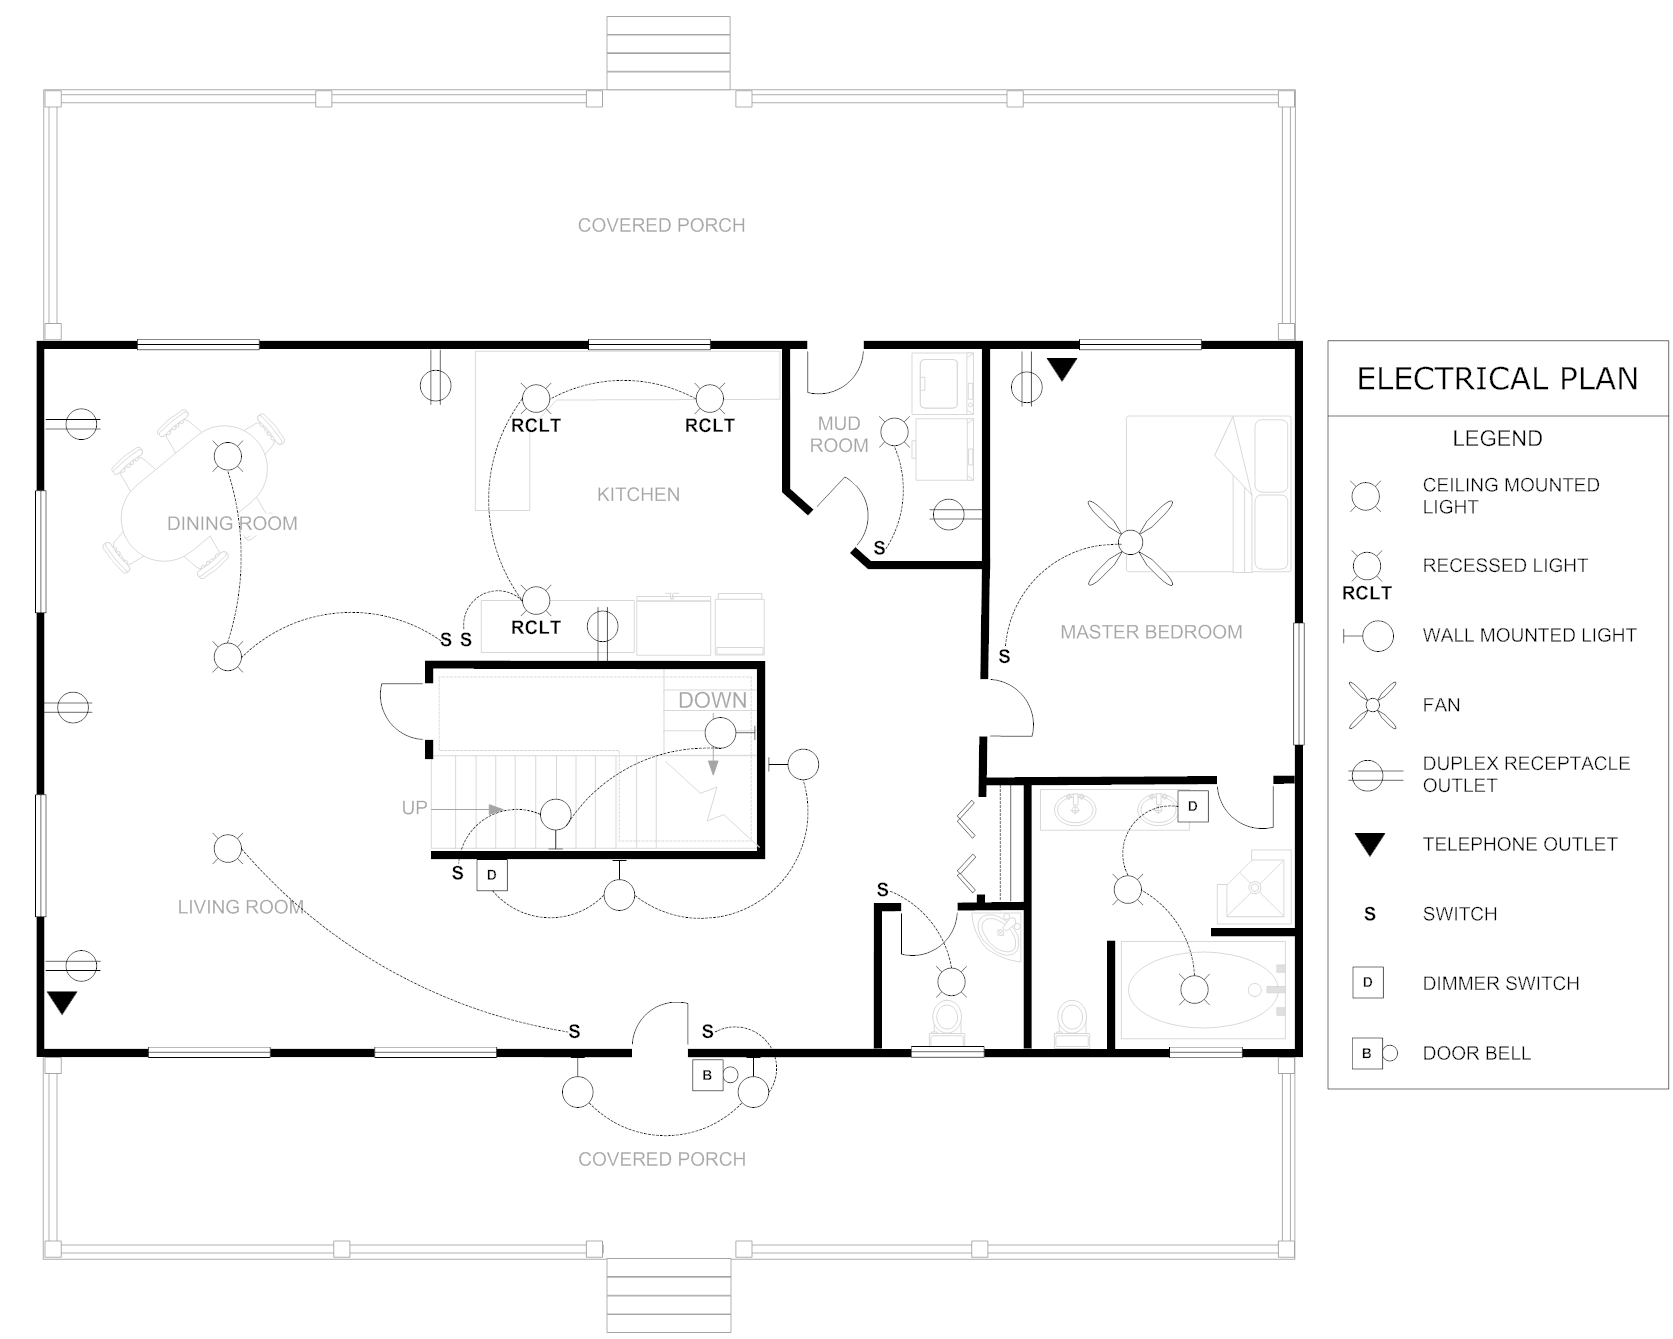 Electrical House Plan Layout